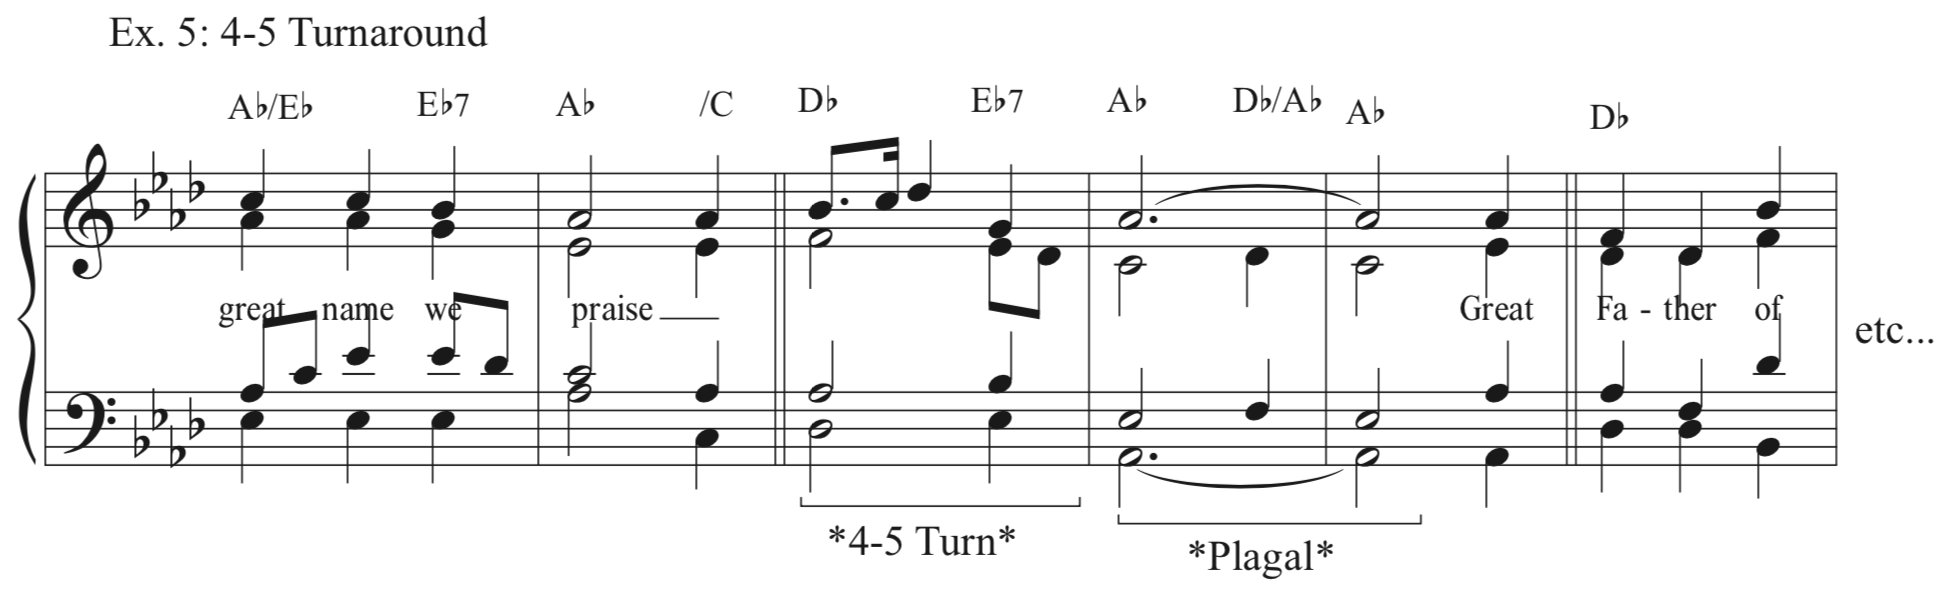 Ex. 5 - 4-5 Turnaround - This one is a little bit longer and has a 4-5 turnaround with a simple melody as well as the simple plagal cadence. The melody here is just something I made up - it can be anything, but I suggest something simple.